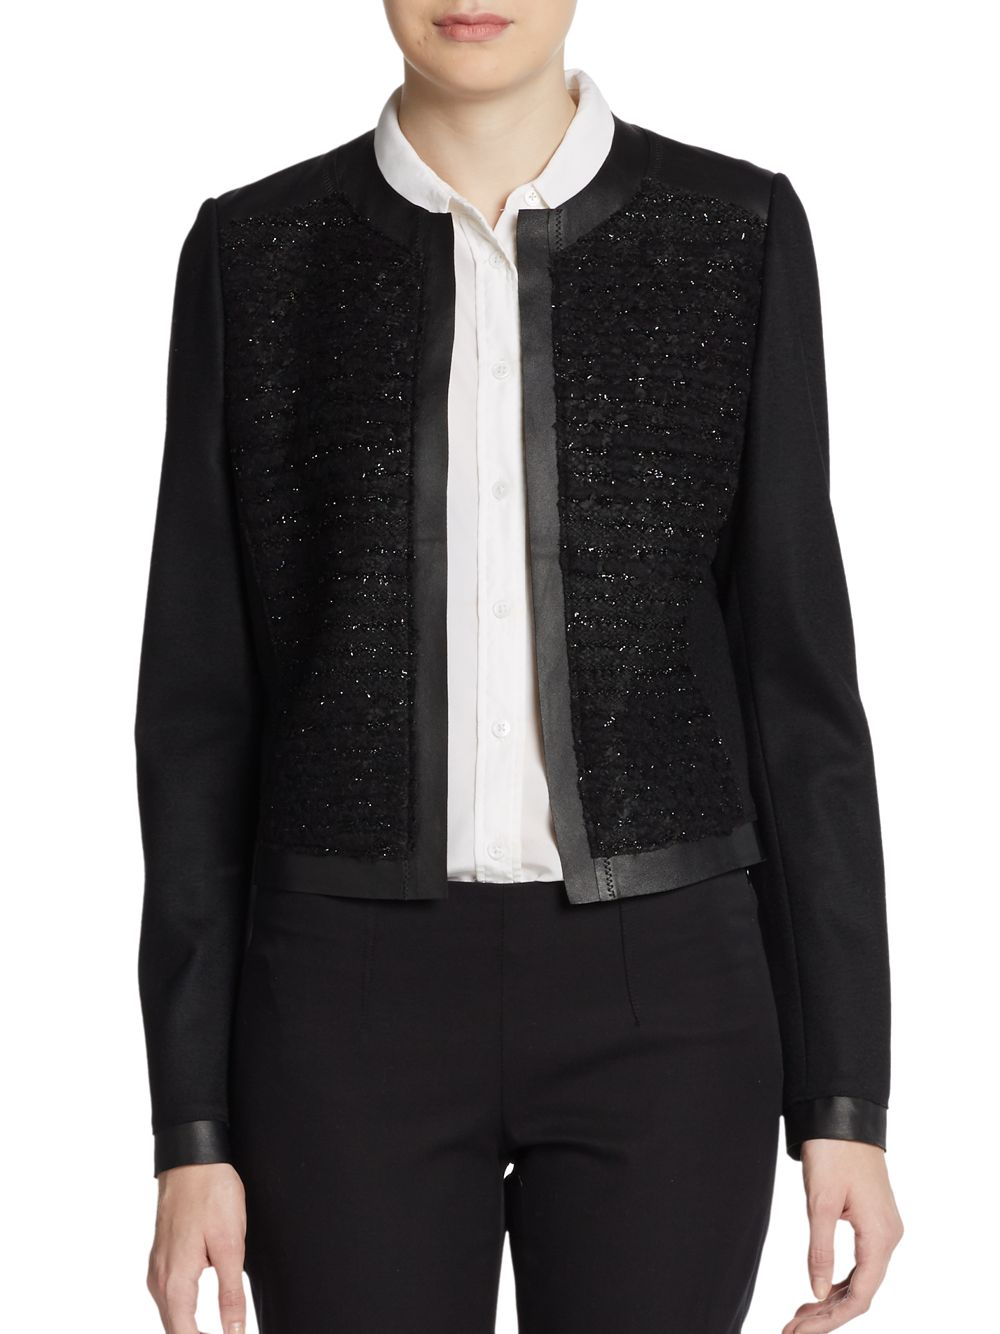 Elie tahari Pearson Leather trimmed Collarless Jacket in Black | Lyst